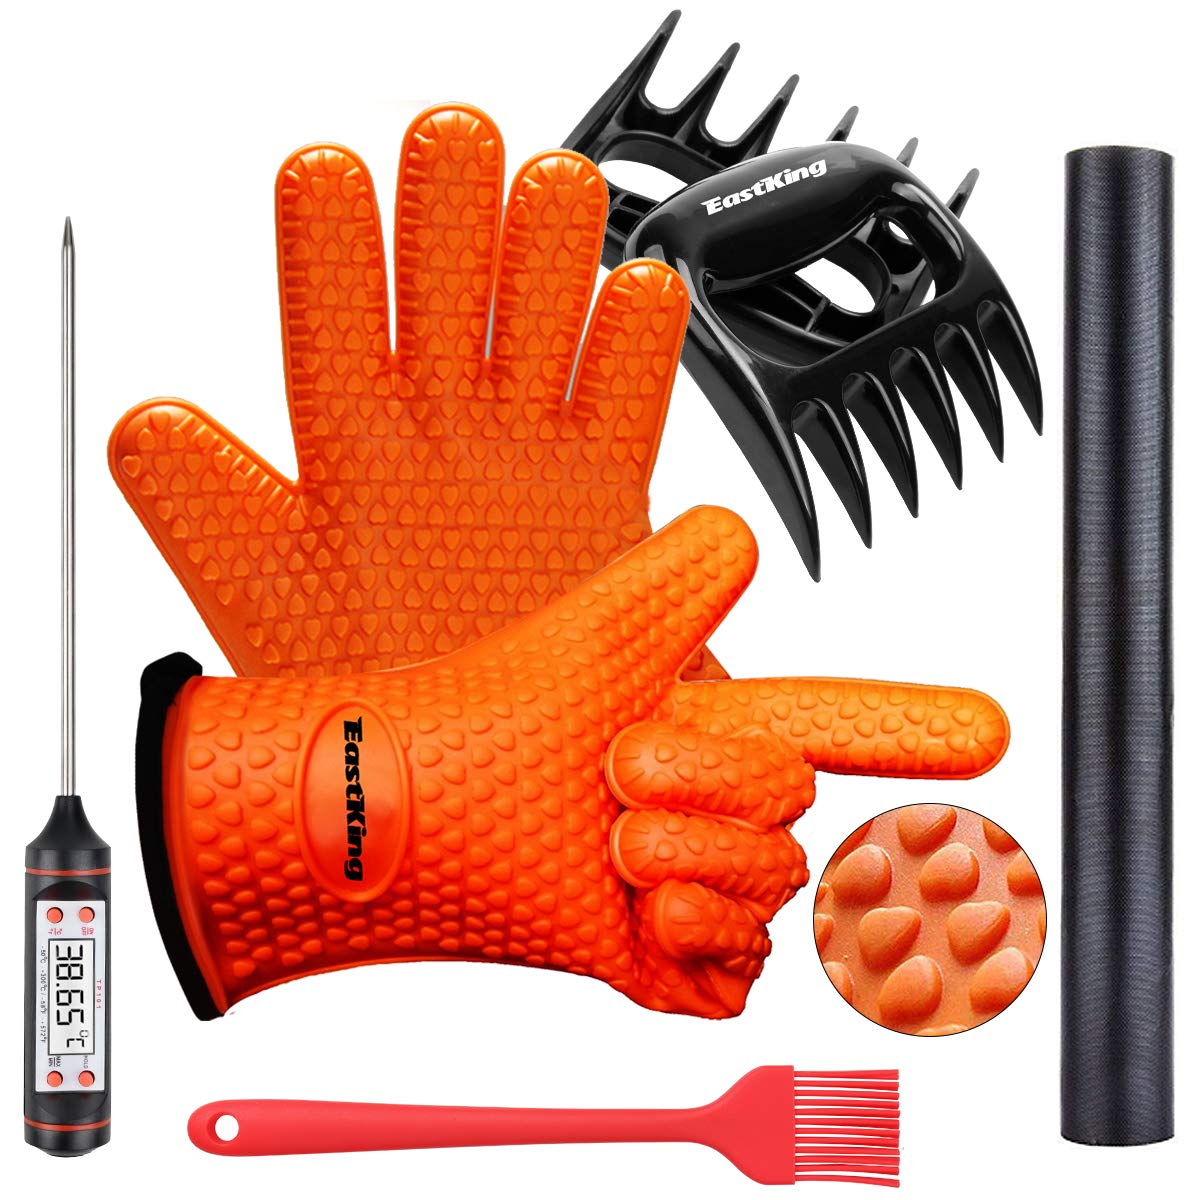 EastKing BBQ Gloves/BBQ Claws/Grill Mat/Meat Thermometer and Silicone Brush Superior Value Premium Set (5pcs Set) - Heat Resistant/Non-Slip/Safe/Cooking/Grilling Silicone Gloves for Indoor & Outdoor 71jB3h7sZHL